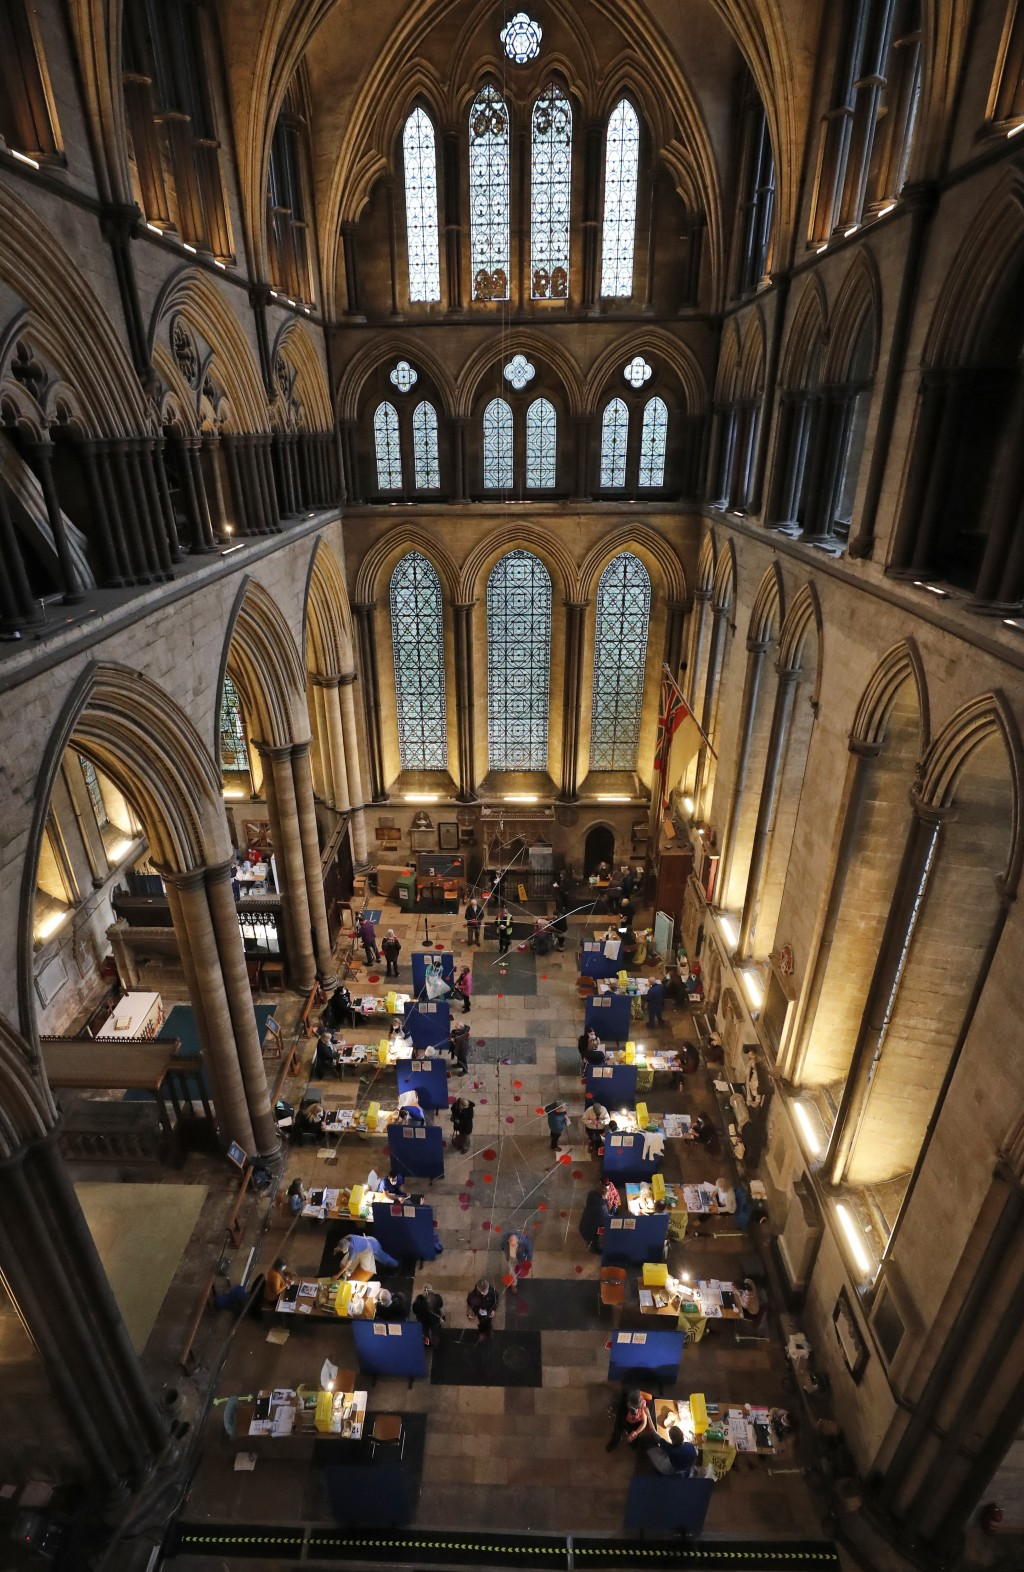 Fourteen tables are set up to provide the Pfizer-BioNTech vaccine inside Salisbury Cathedral in Salisbury, England, Wednesday, Jan. 20, 2021. Salisbur...